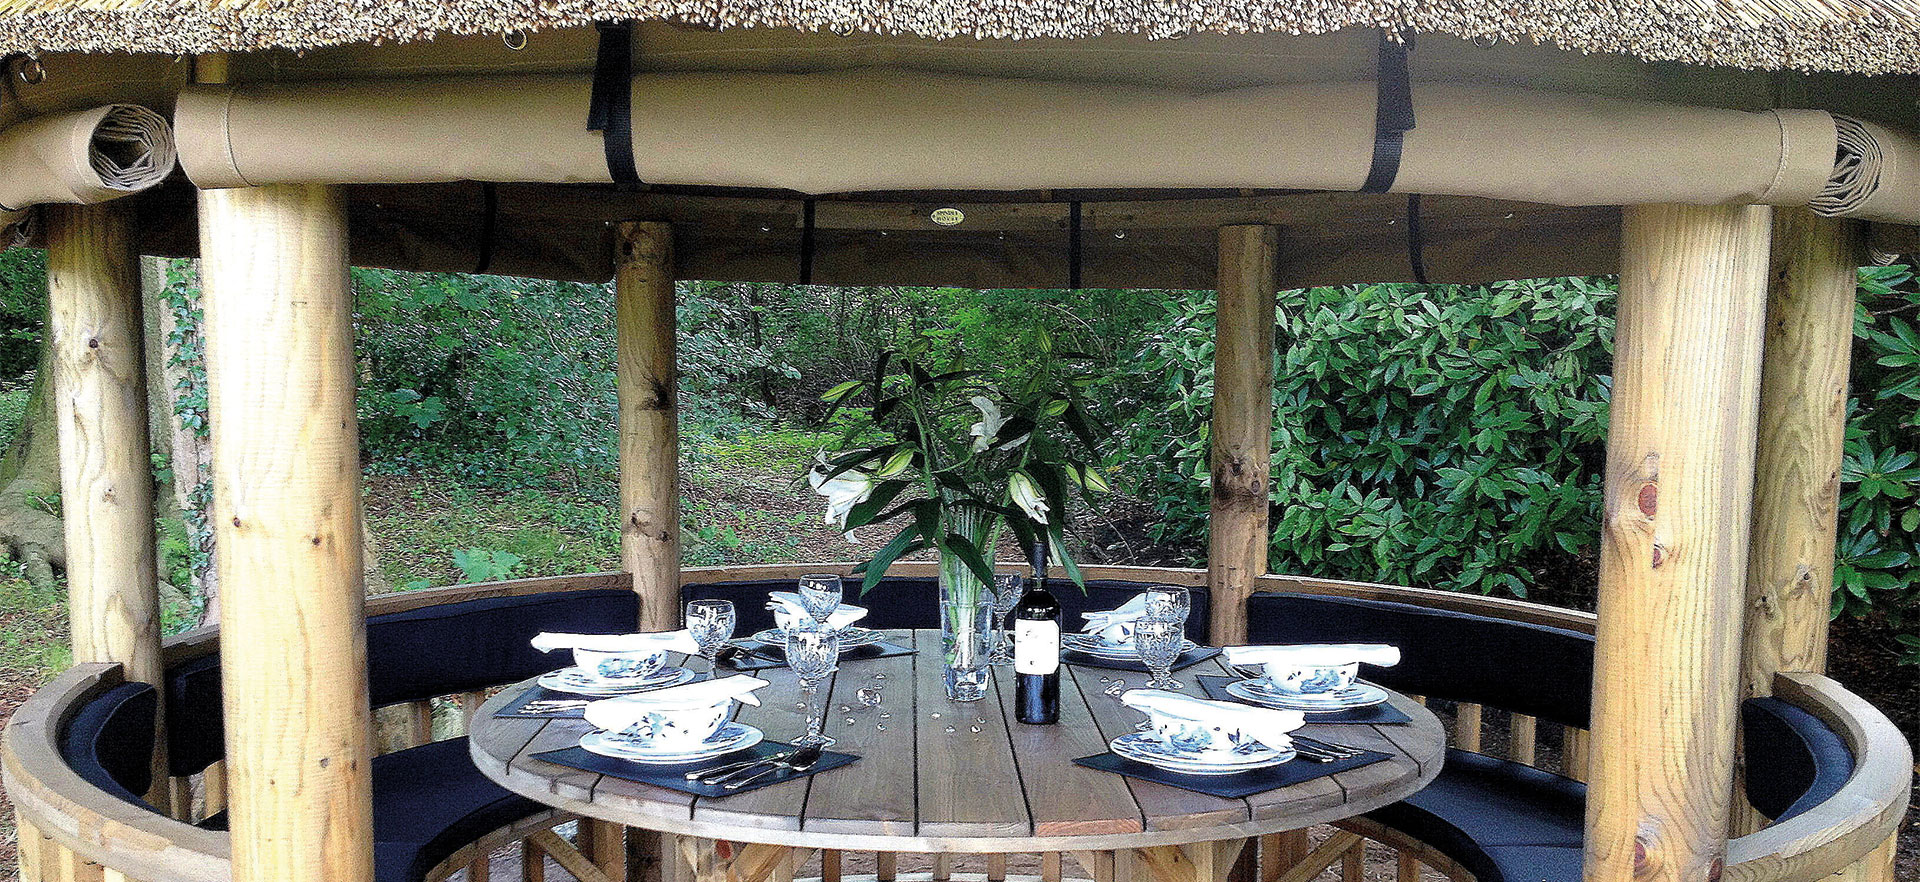 3 metre gazebo close up with rolled up canvas side panels